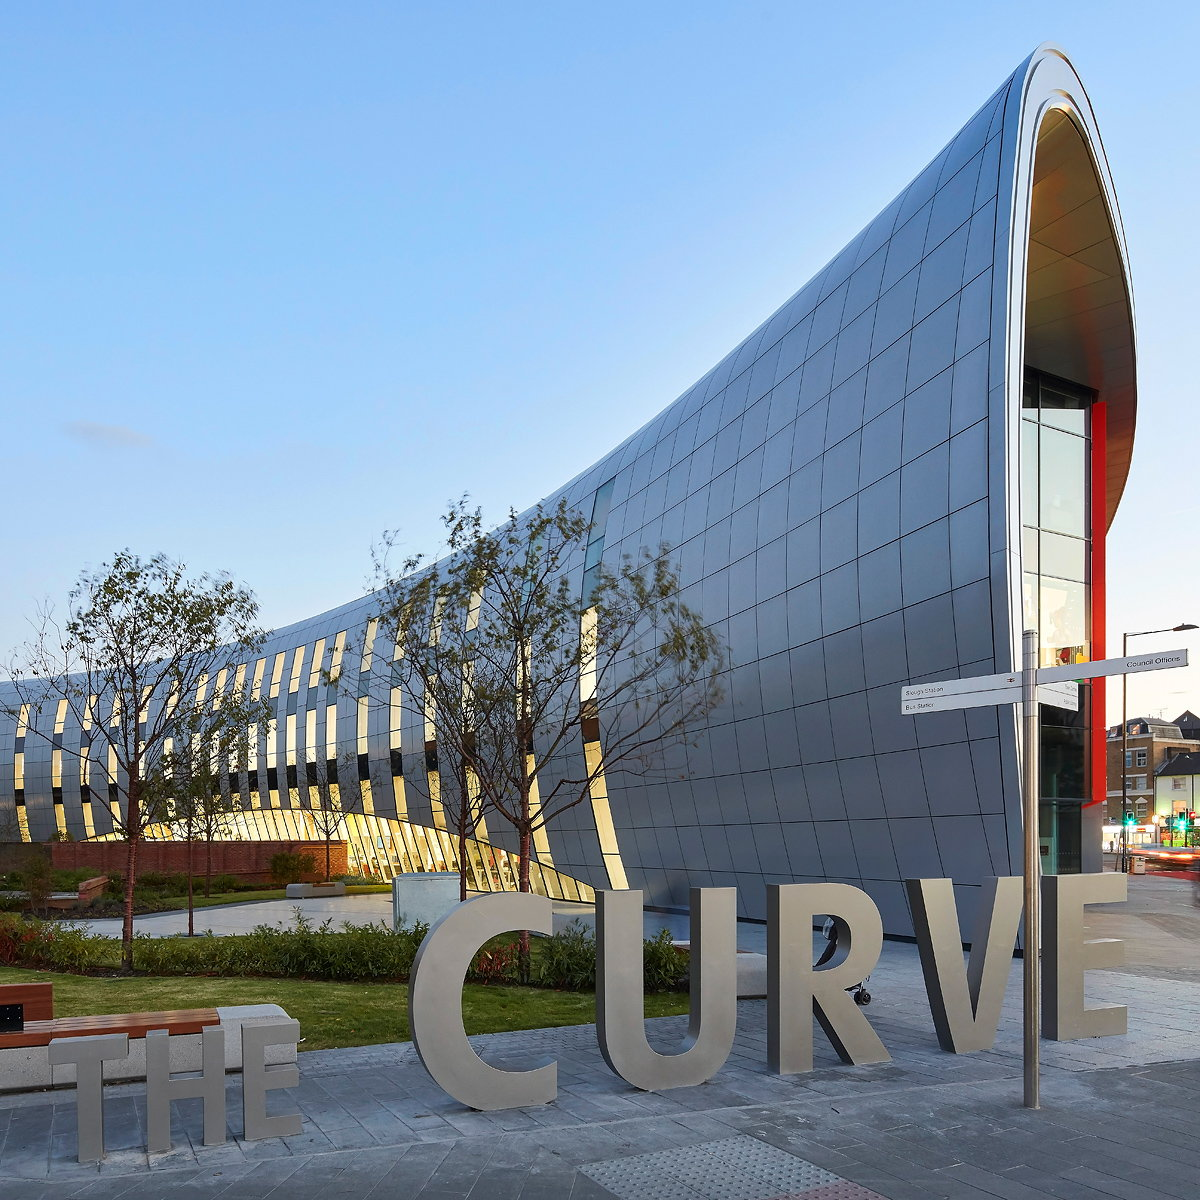 The Curve Completes in Heart of Slough